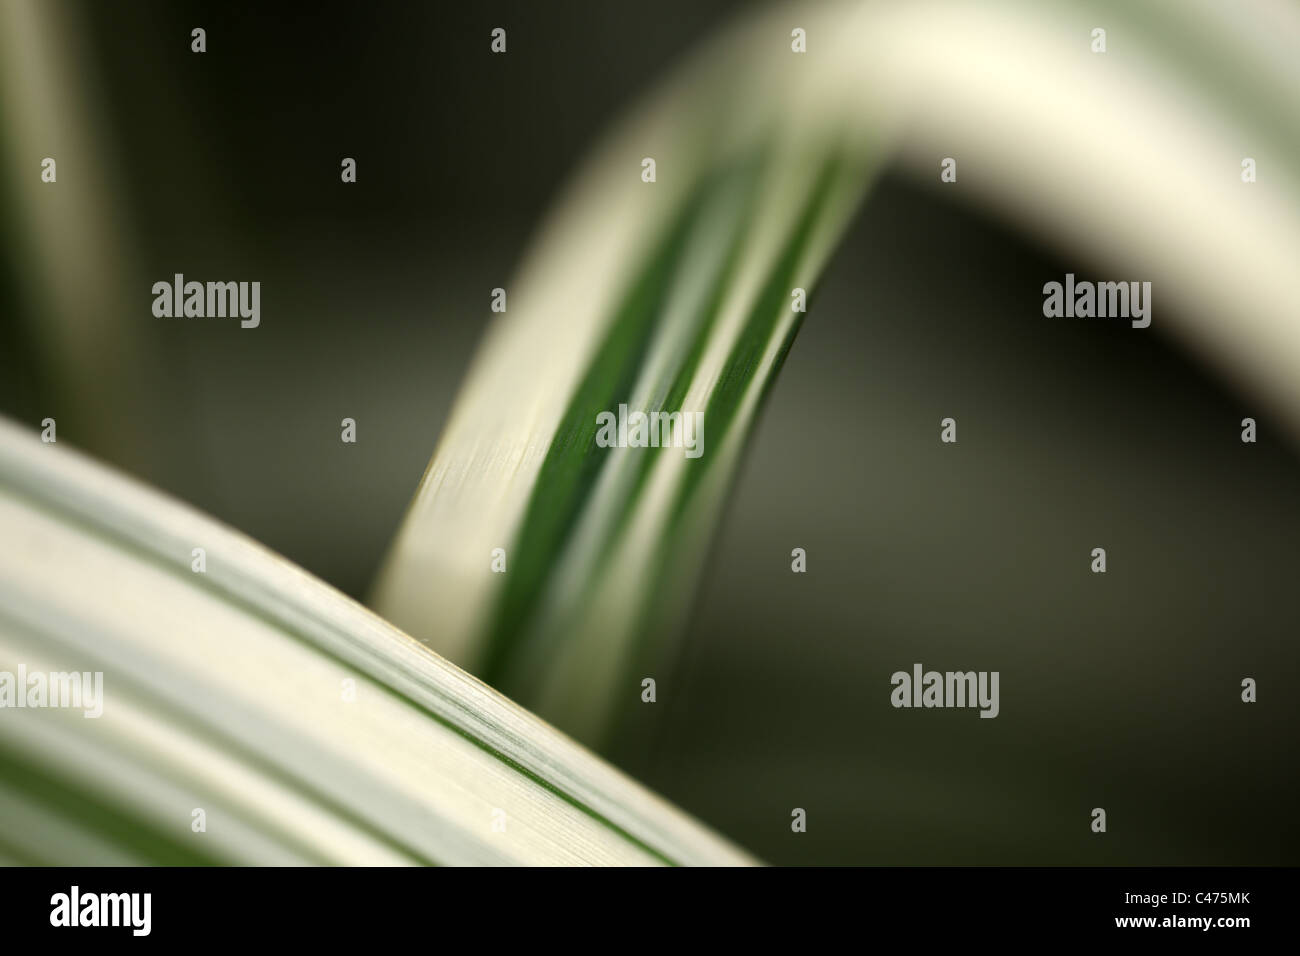 Arundo donax variegata - Giant Reed Grass - abstract shallow depth of field view - Stock Image